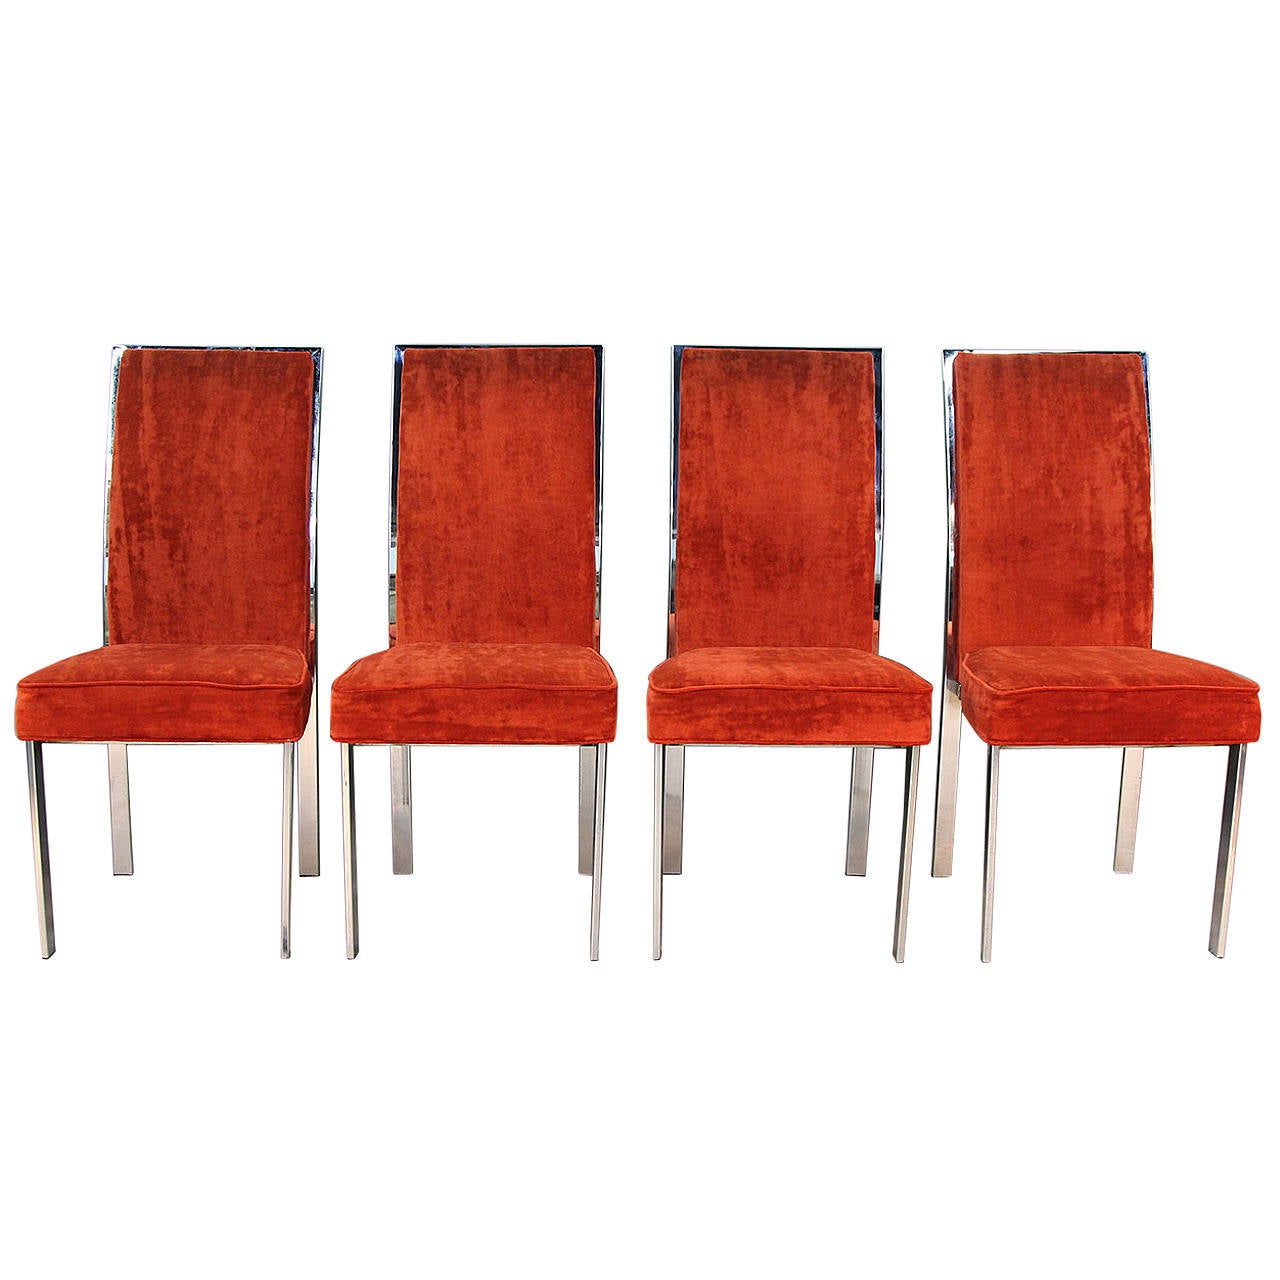 Milo baughman style chrome and velvet dining chairs at 1stdibs for Dining room velvet chairs